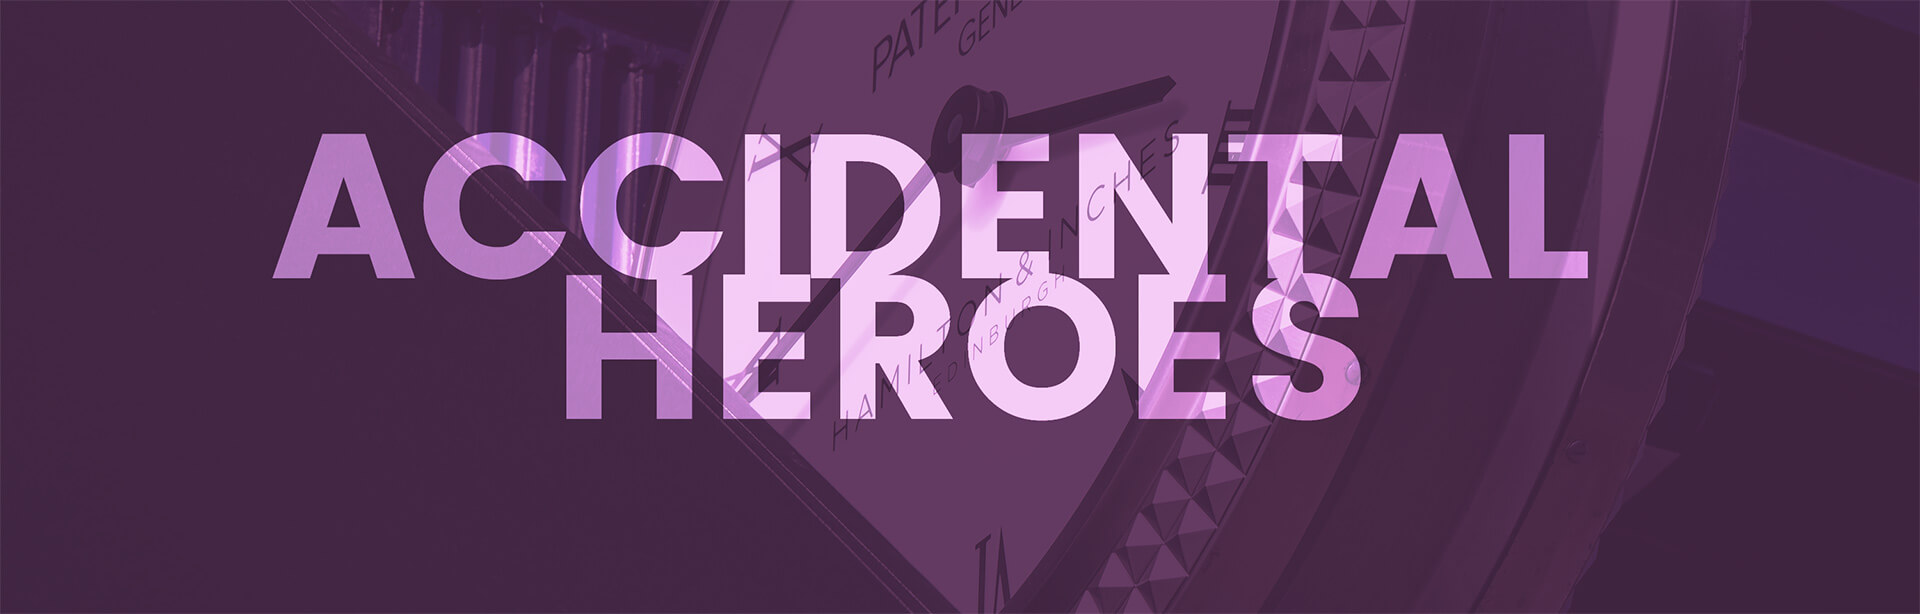 Accidental Heroes